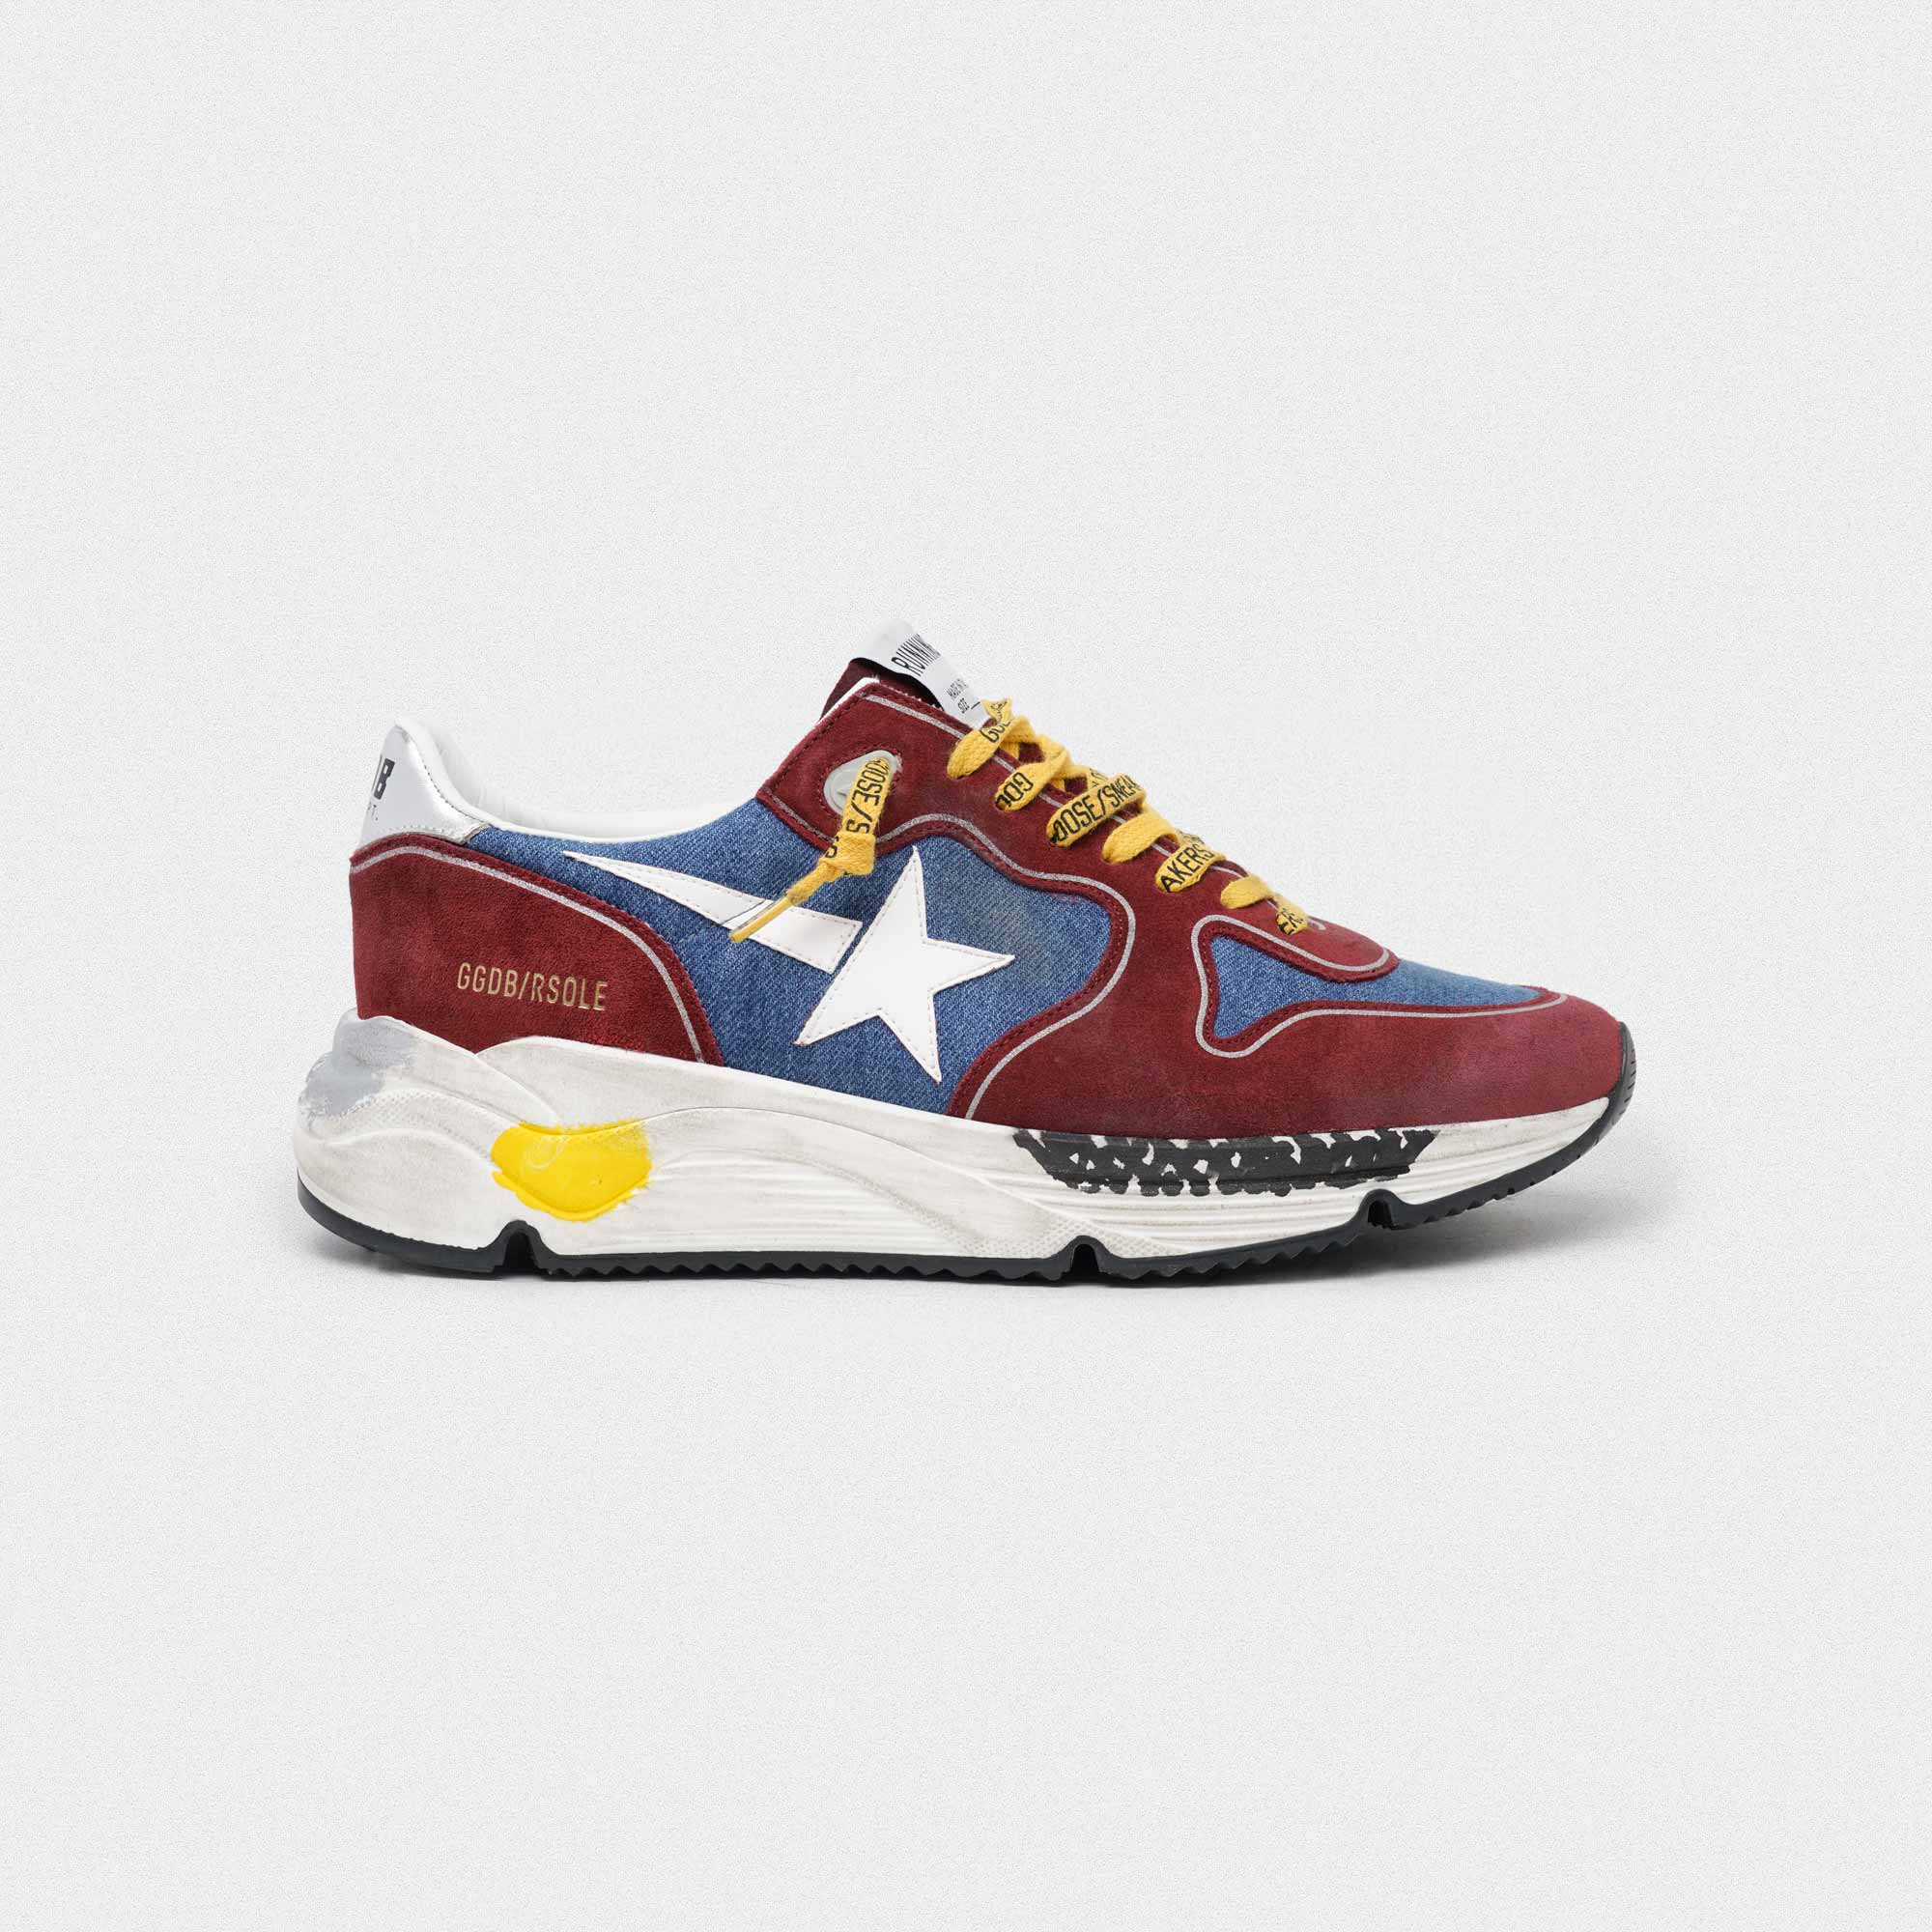 Burgundy and blue Running Sole